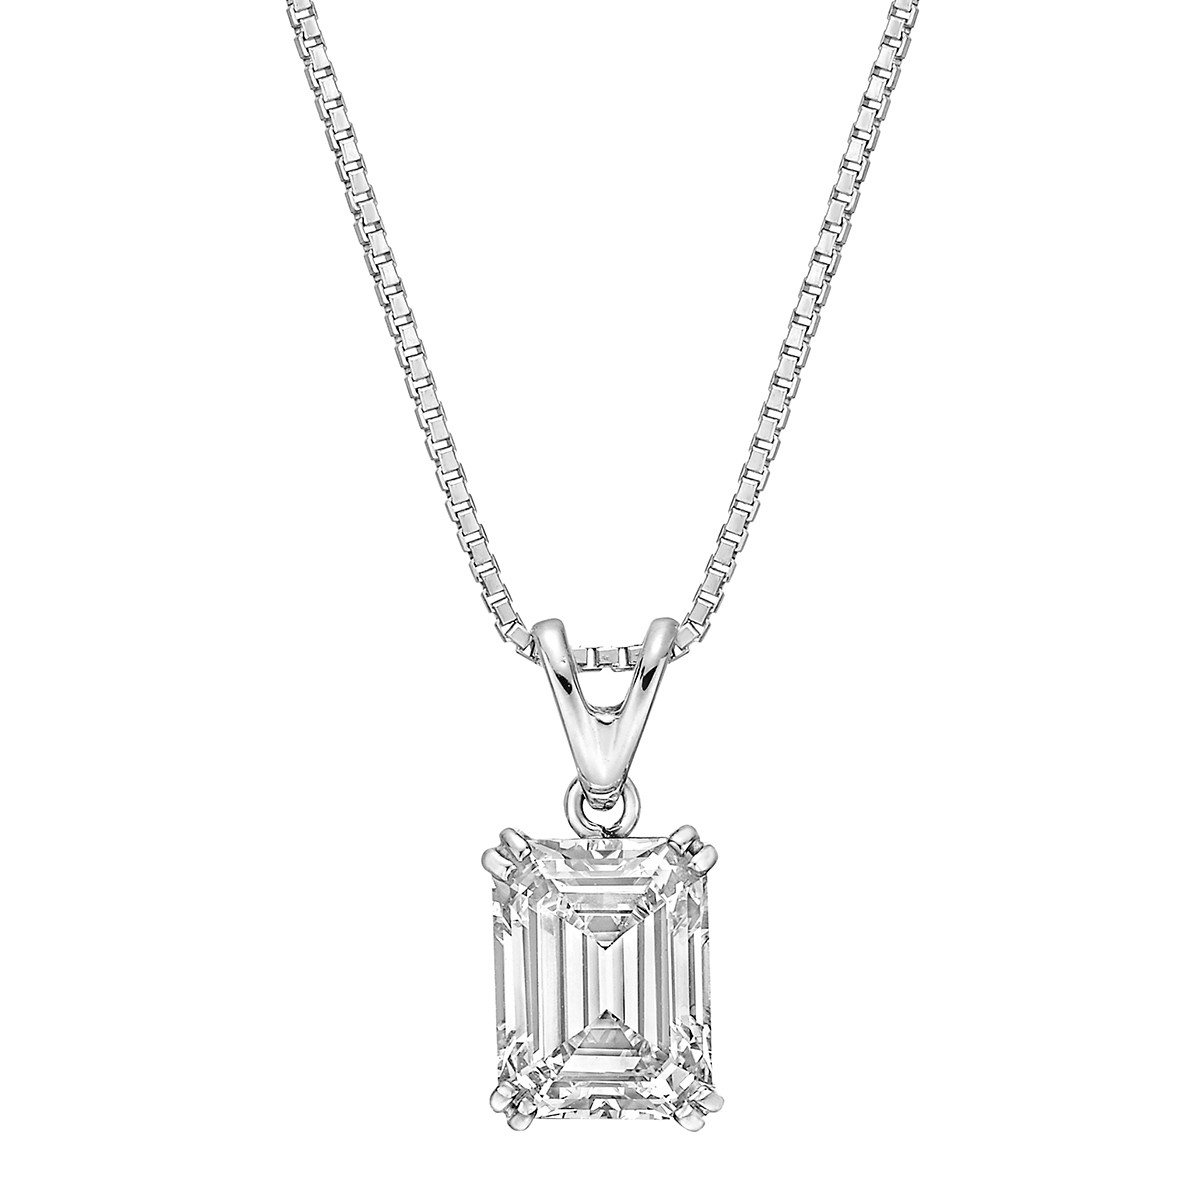 3.14 Carat Emerald-Cut Diamond Solitaire Pendant